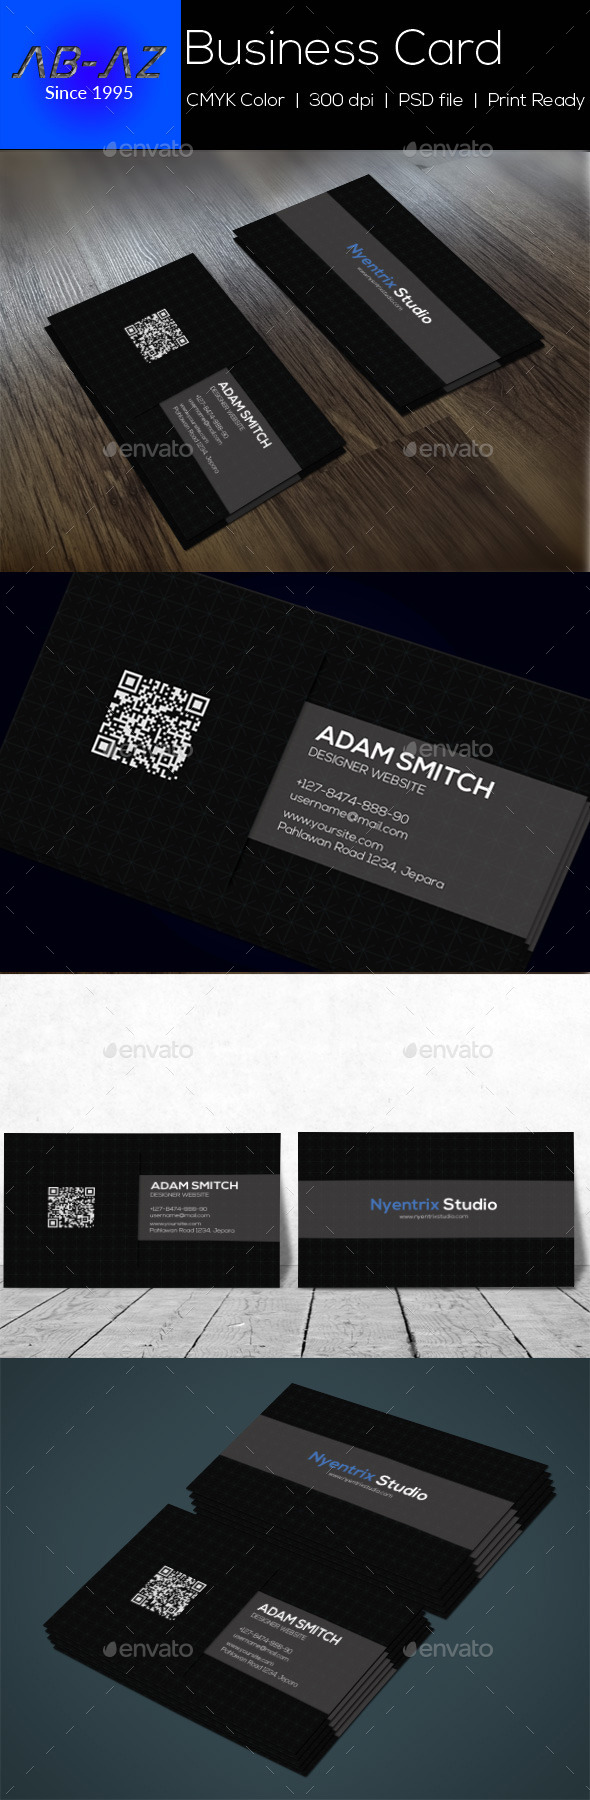 Style Clean Business Card - Corporate Business Cards